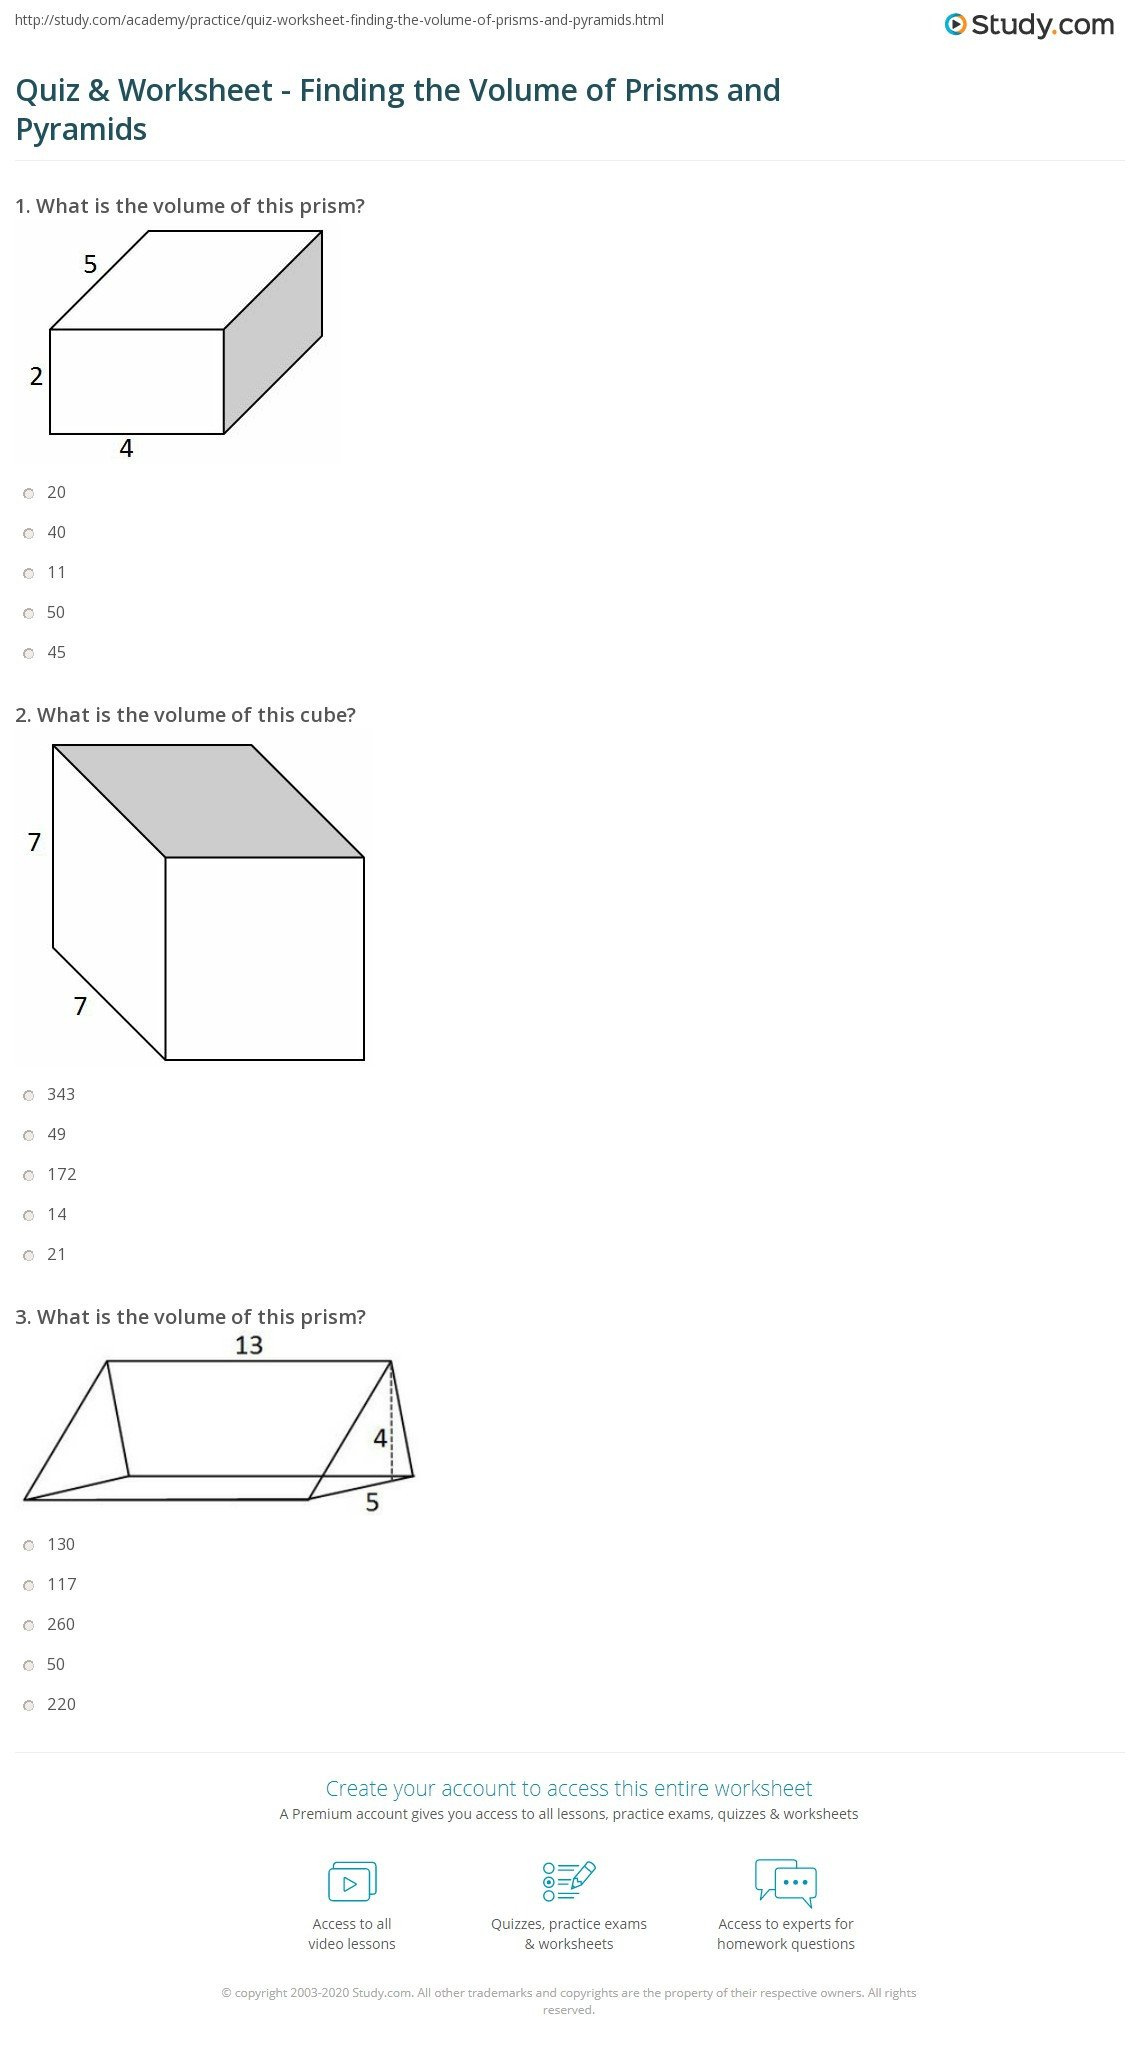 quiz worksheet finding the volume of prisms and pyramids